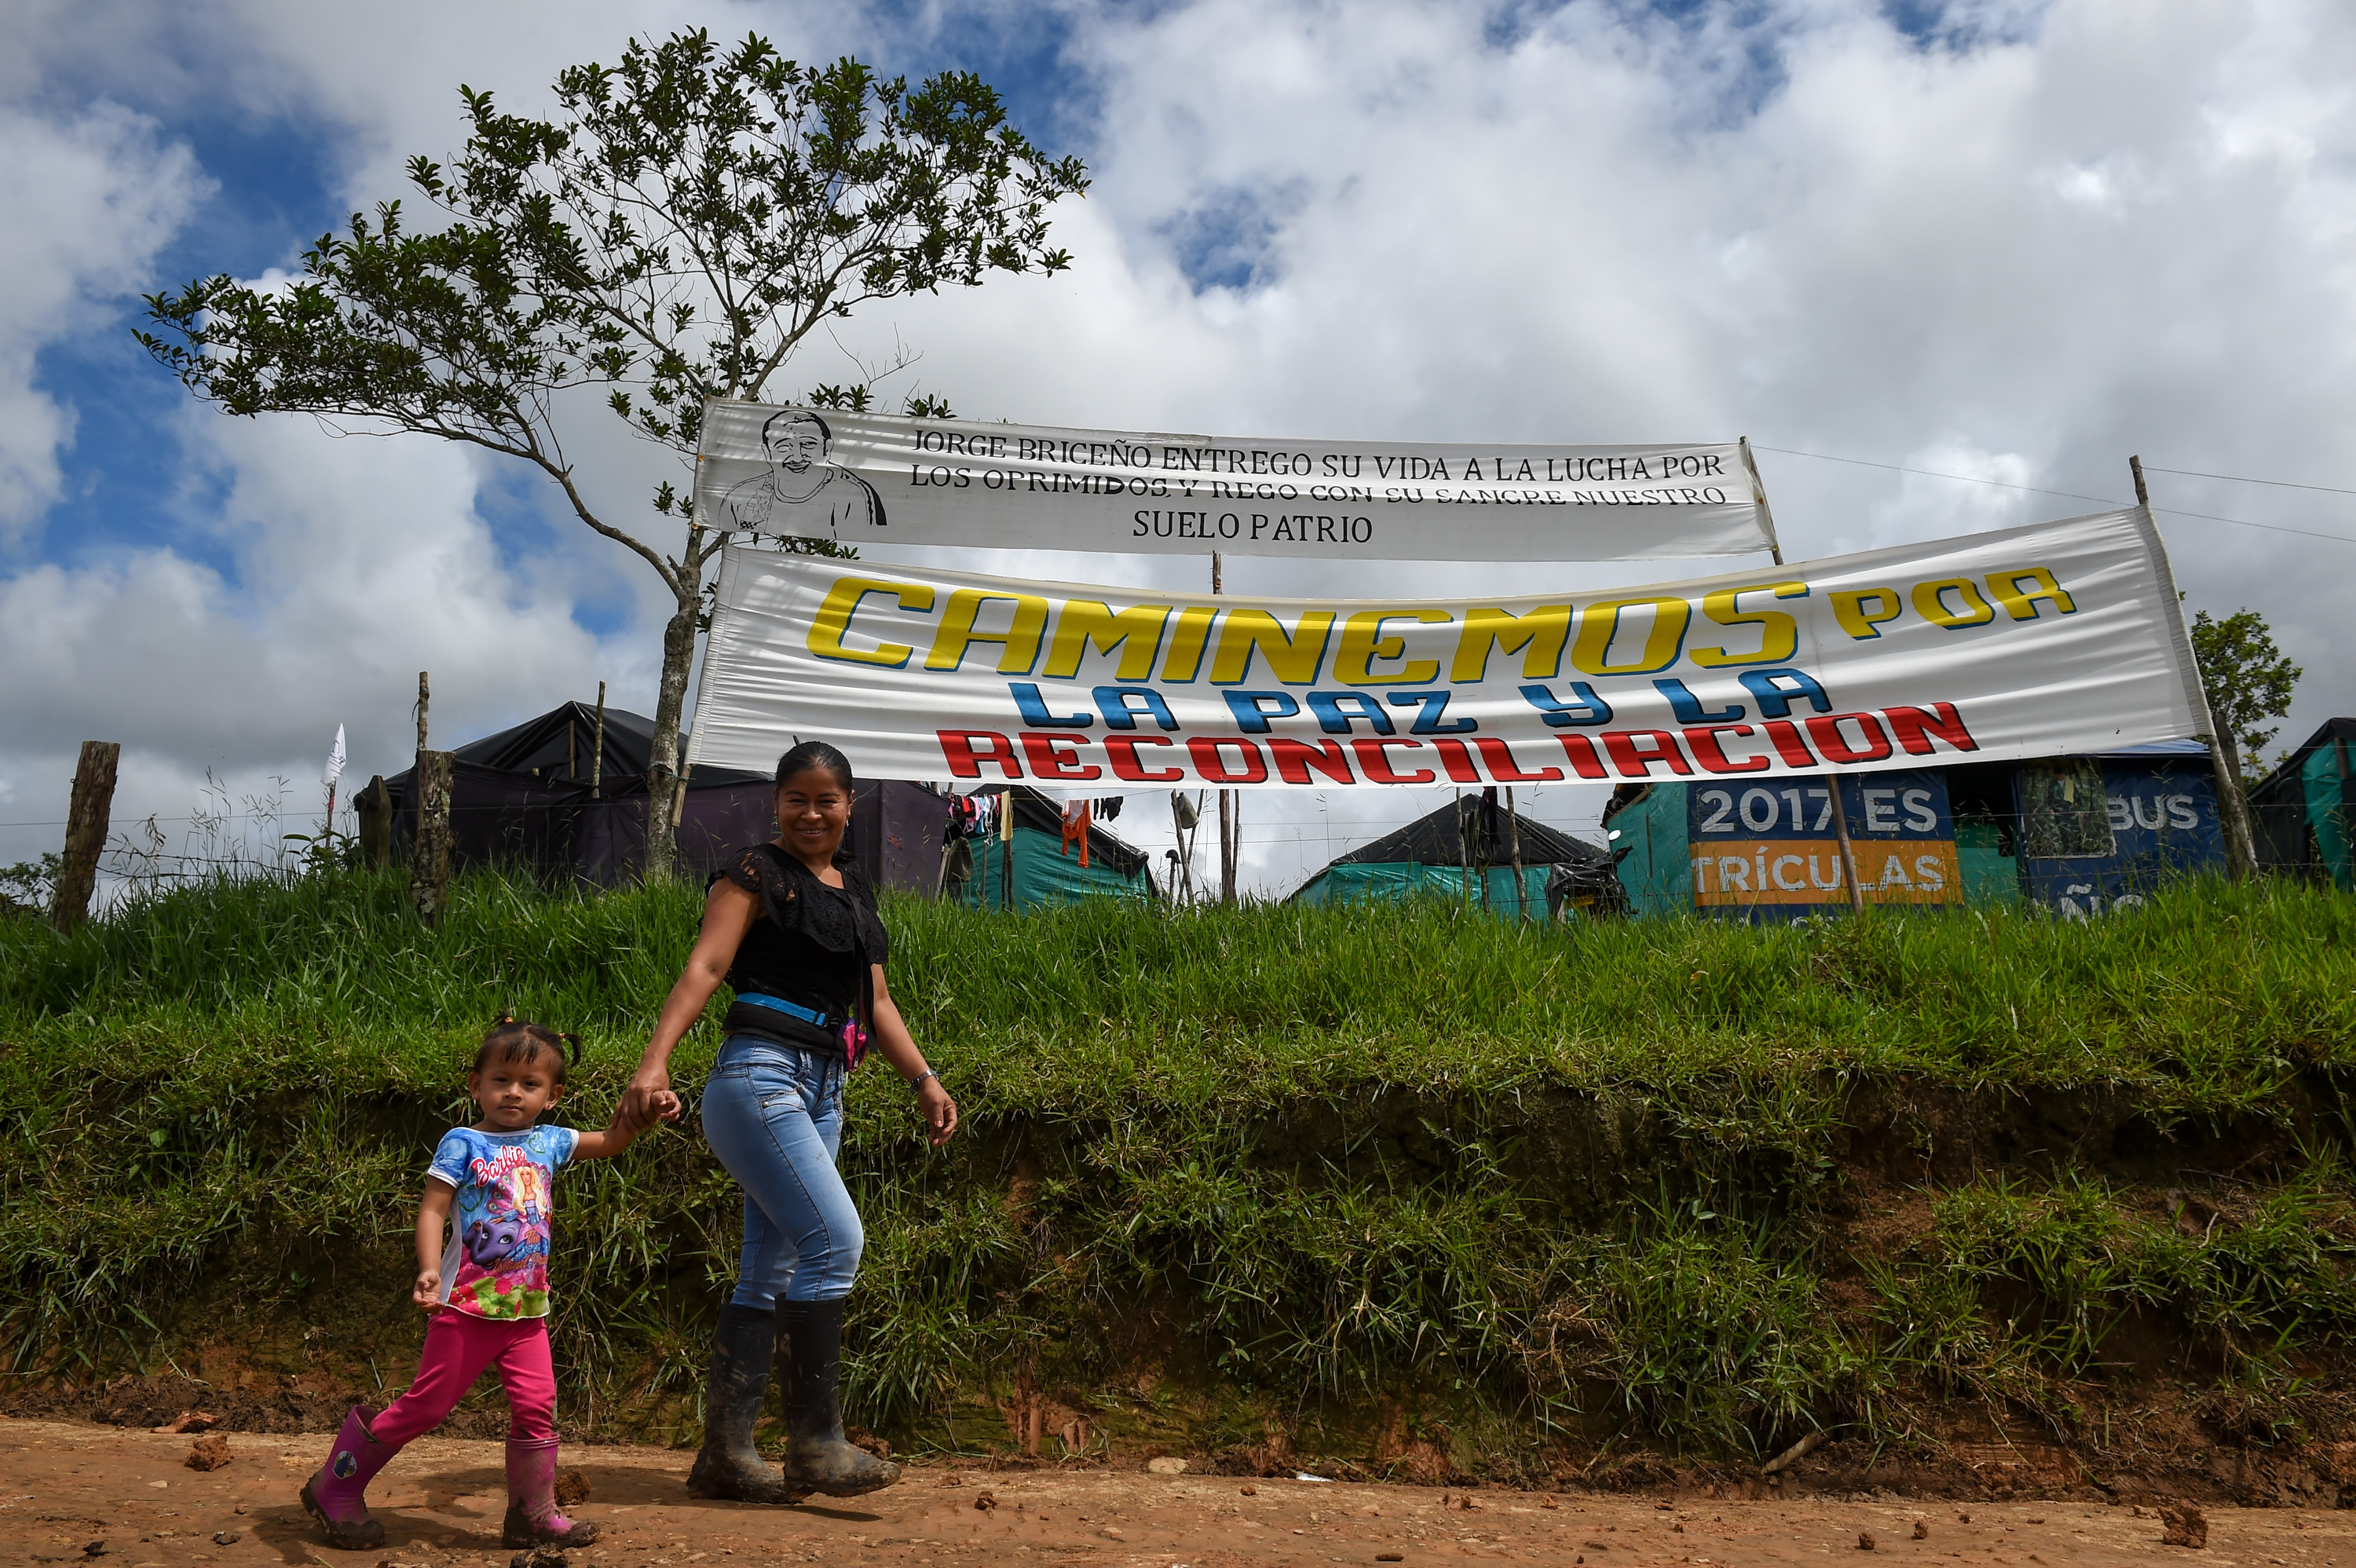 A rebel woman and a girl walk past a sign at the Transitional Standardization Zone Mariana Paez, Buena vista, Mesetas municipality, Colombia on June 26, 2017, before the final ceremony of abandonment of arms and the FARC's end as an armed group. / AFP PHOTO / RAUL ARBOLEDA